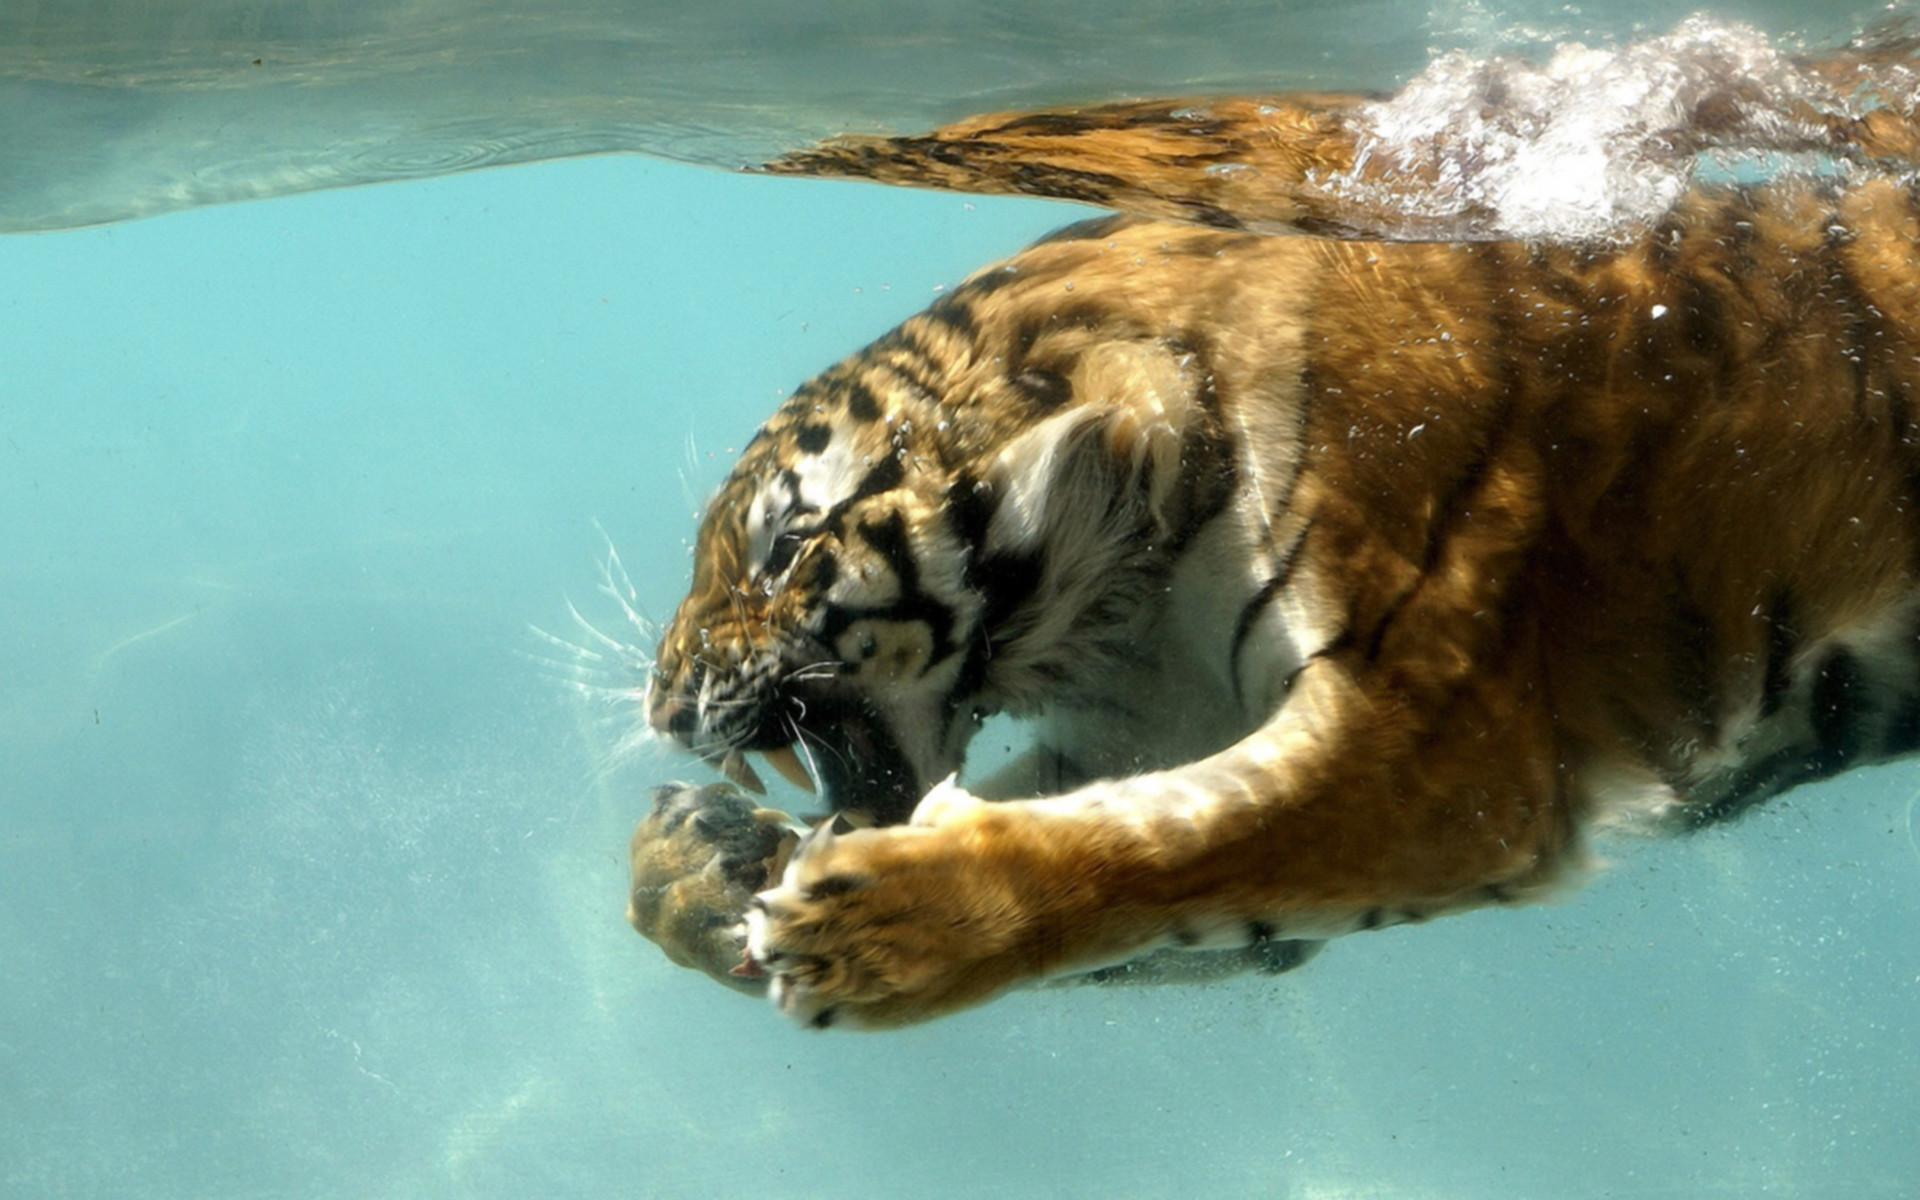 1920x1200 HD Computer Animal Wallpaper | tiger in water desktop wallpaper backgrounds  not just for your desktop